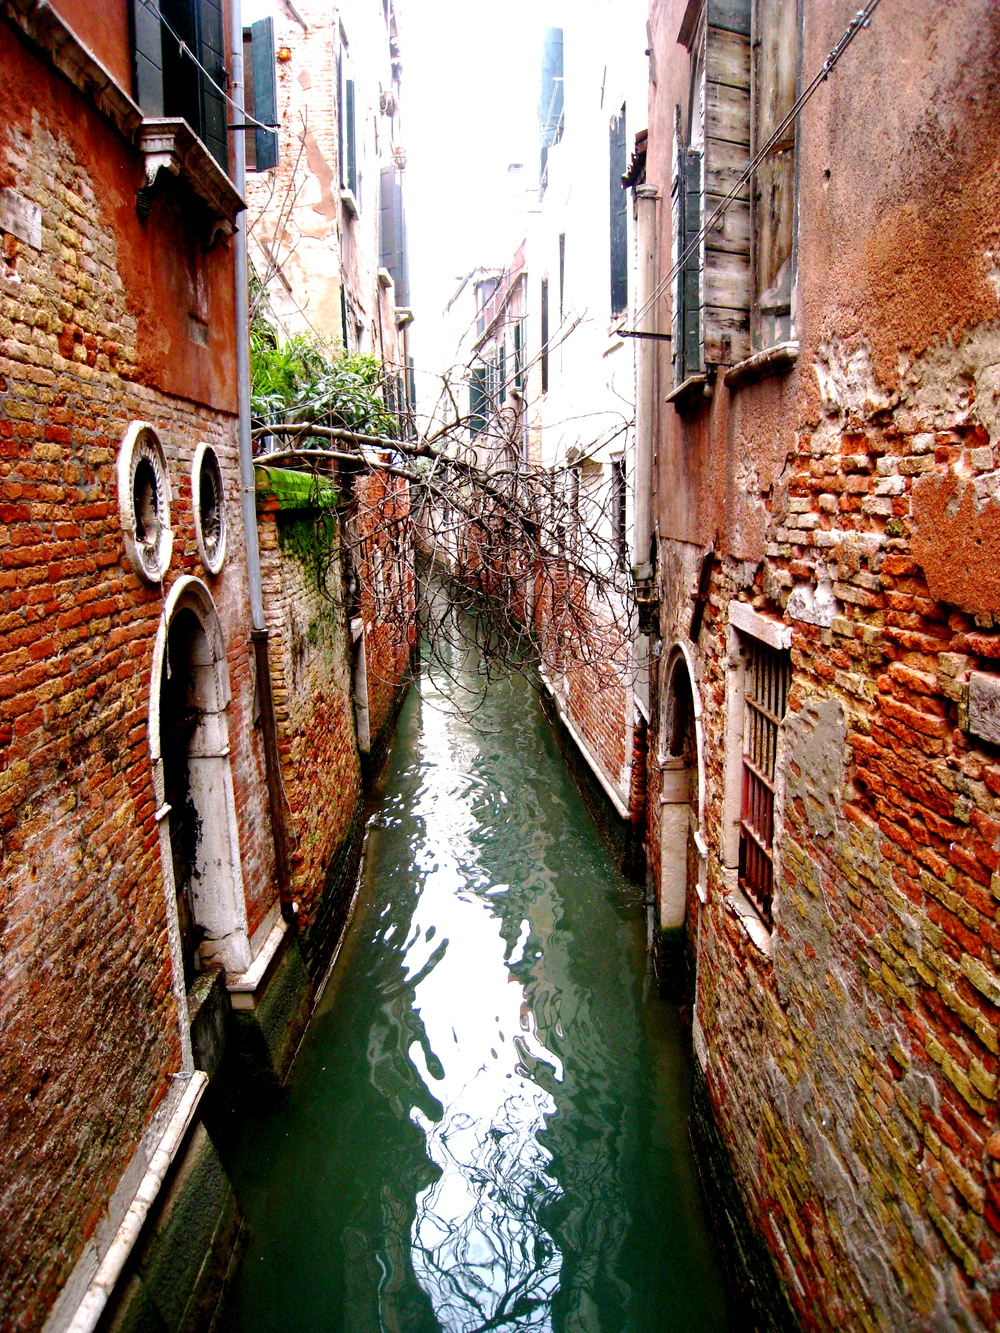 The canals of Venice, Italy photographed by Aubry, 2010